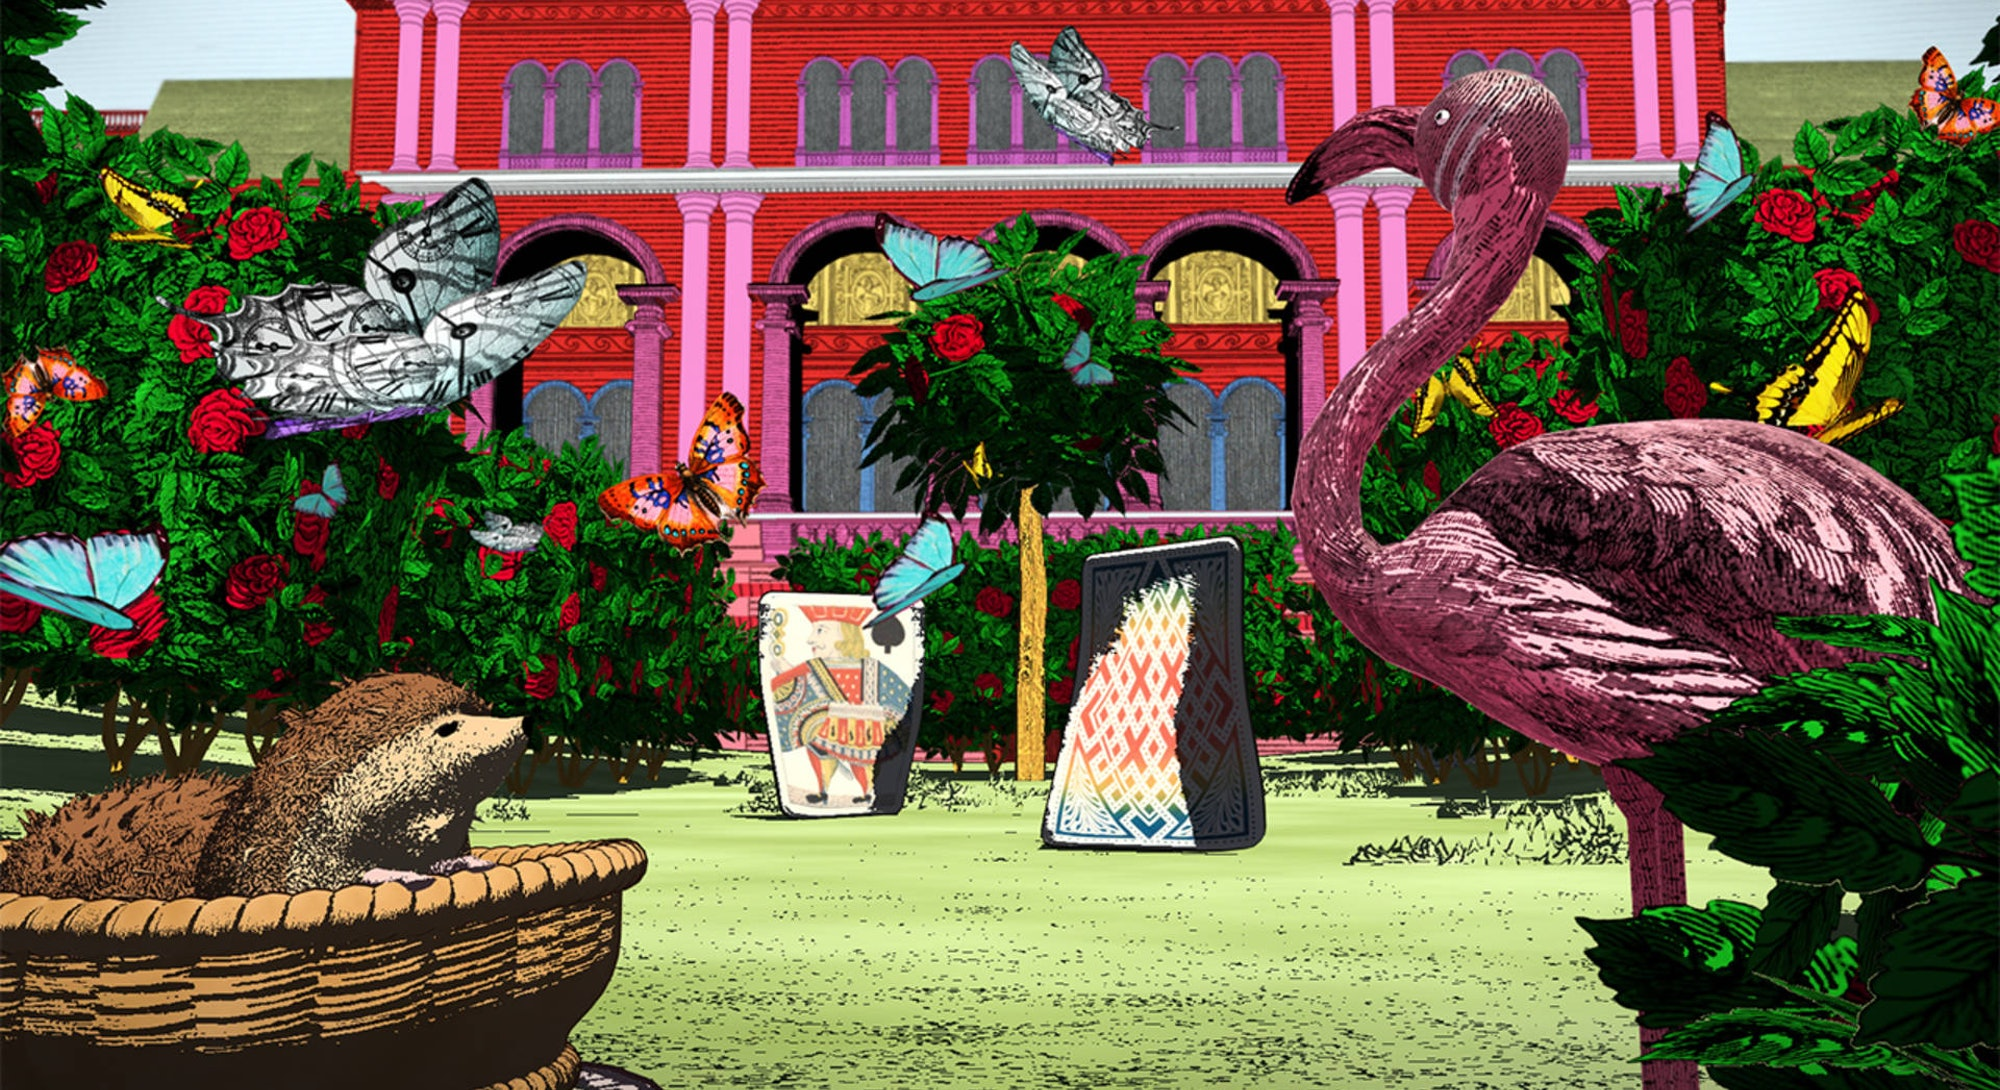 A virtual reality setting of the Alice: Curious and Curiouser exhibition.